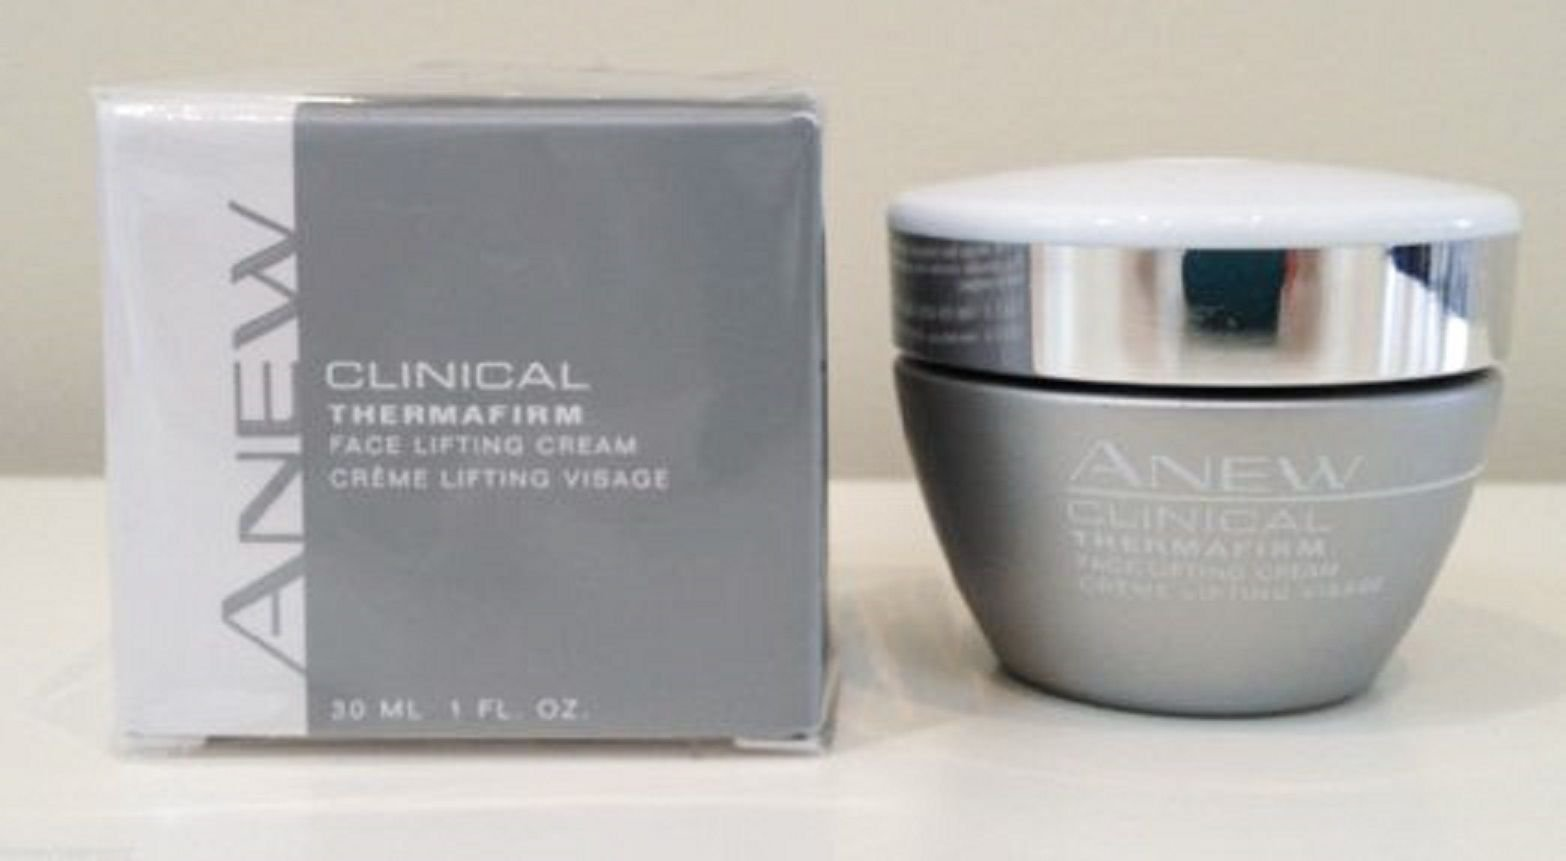 anew clinical eye lift pro instructions